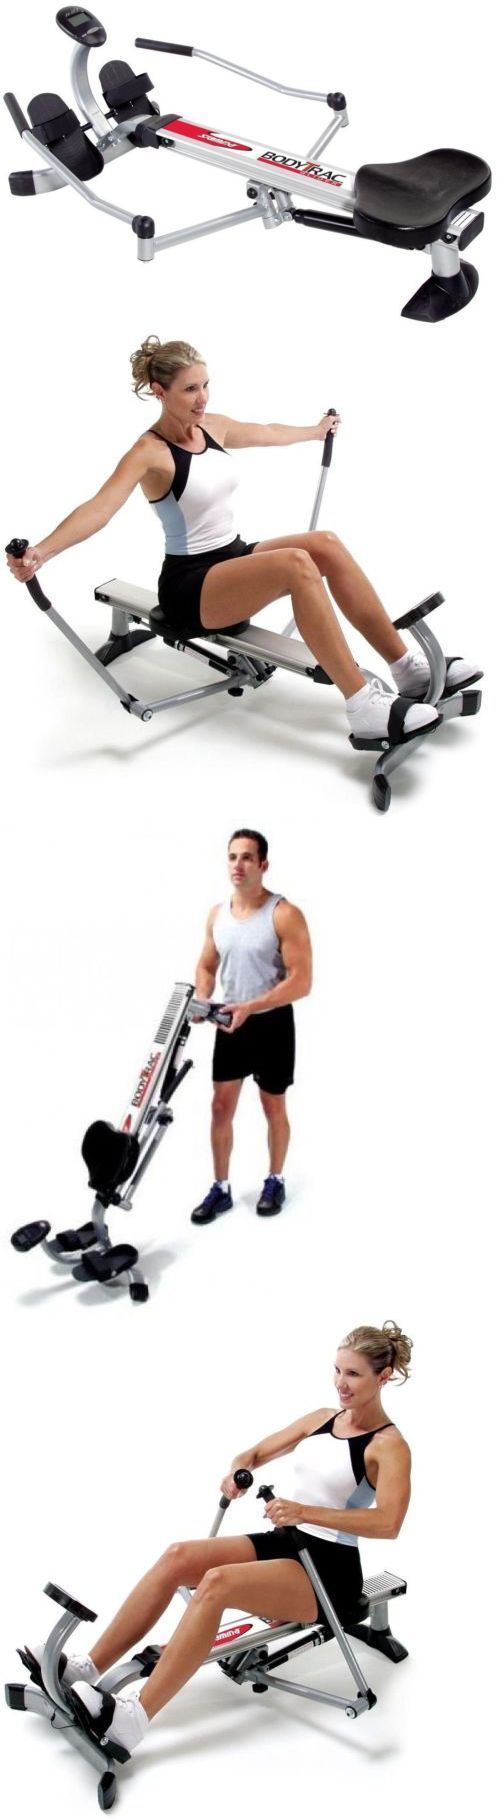 Rowing Machines 28060: Stamina Rowing Machine Body Trac Glider Compact Storage Steel Frame Gas Shock -> BUY IT NOW ONLY: $180.69 on eBay!